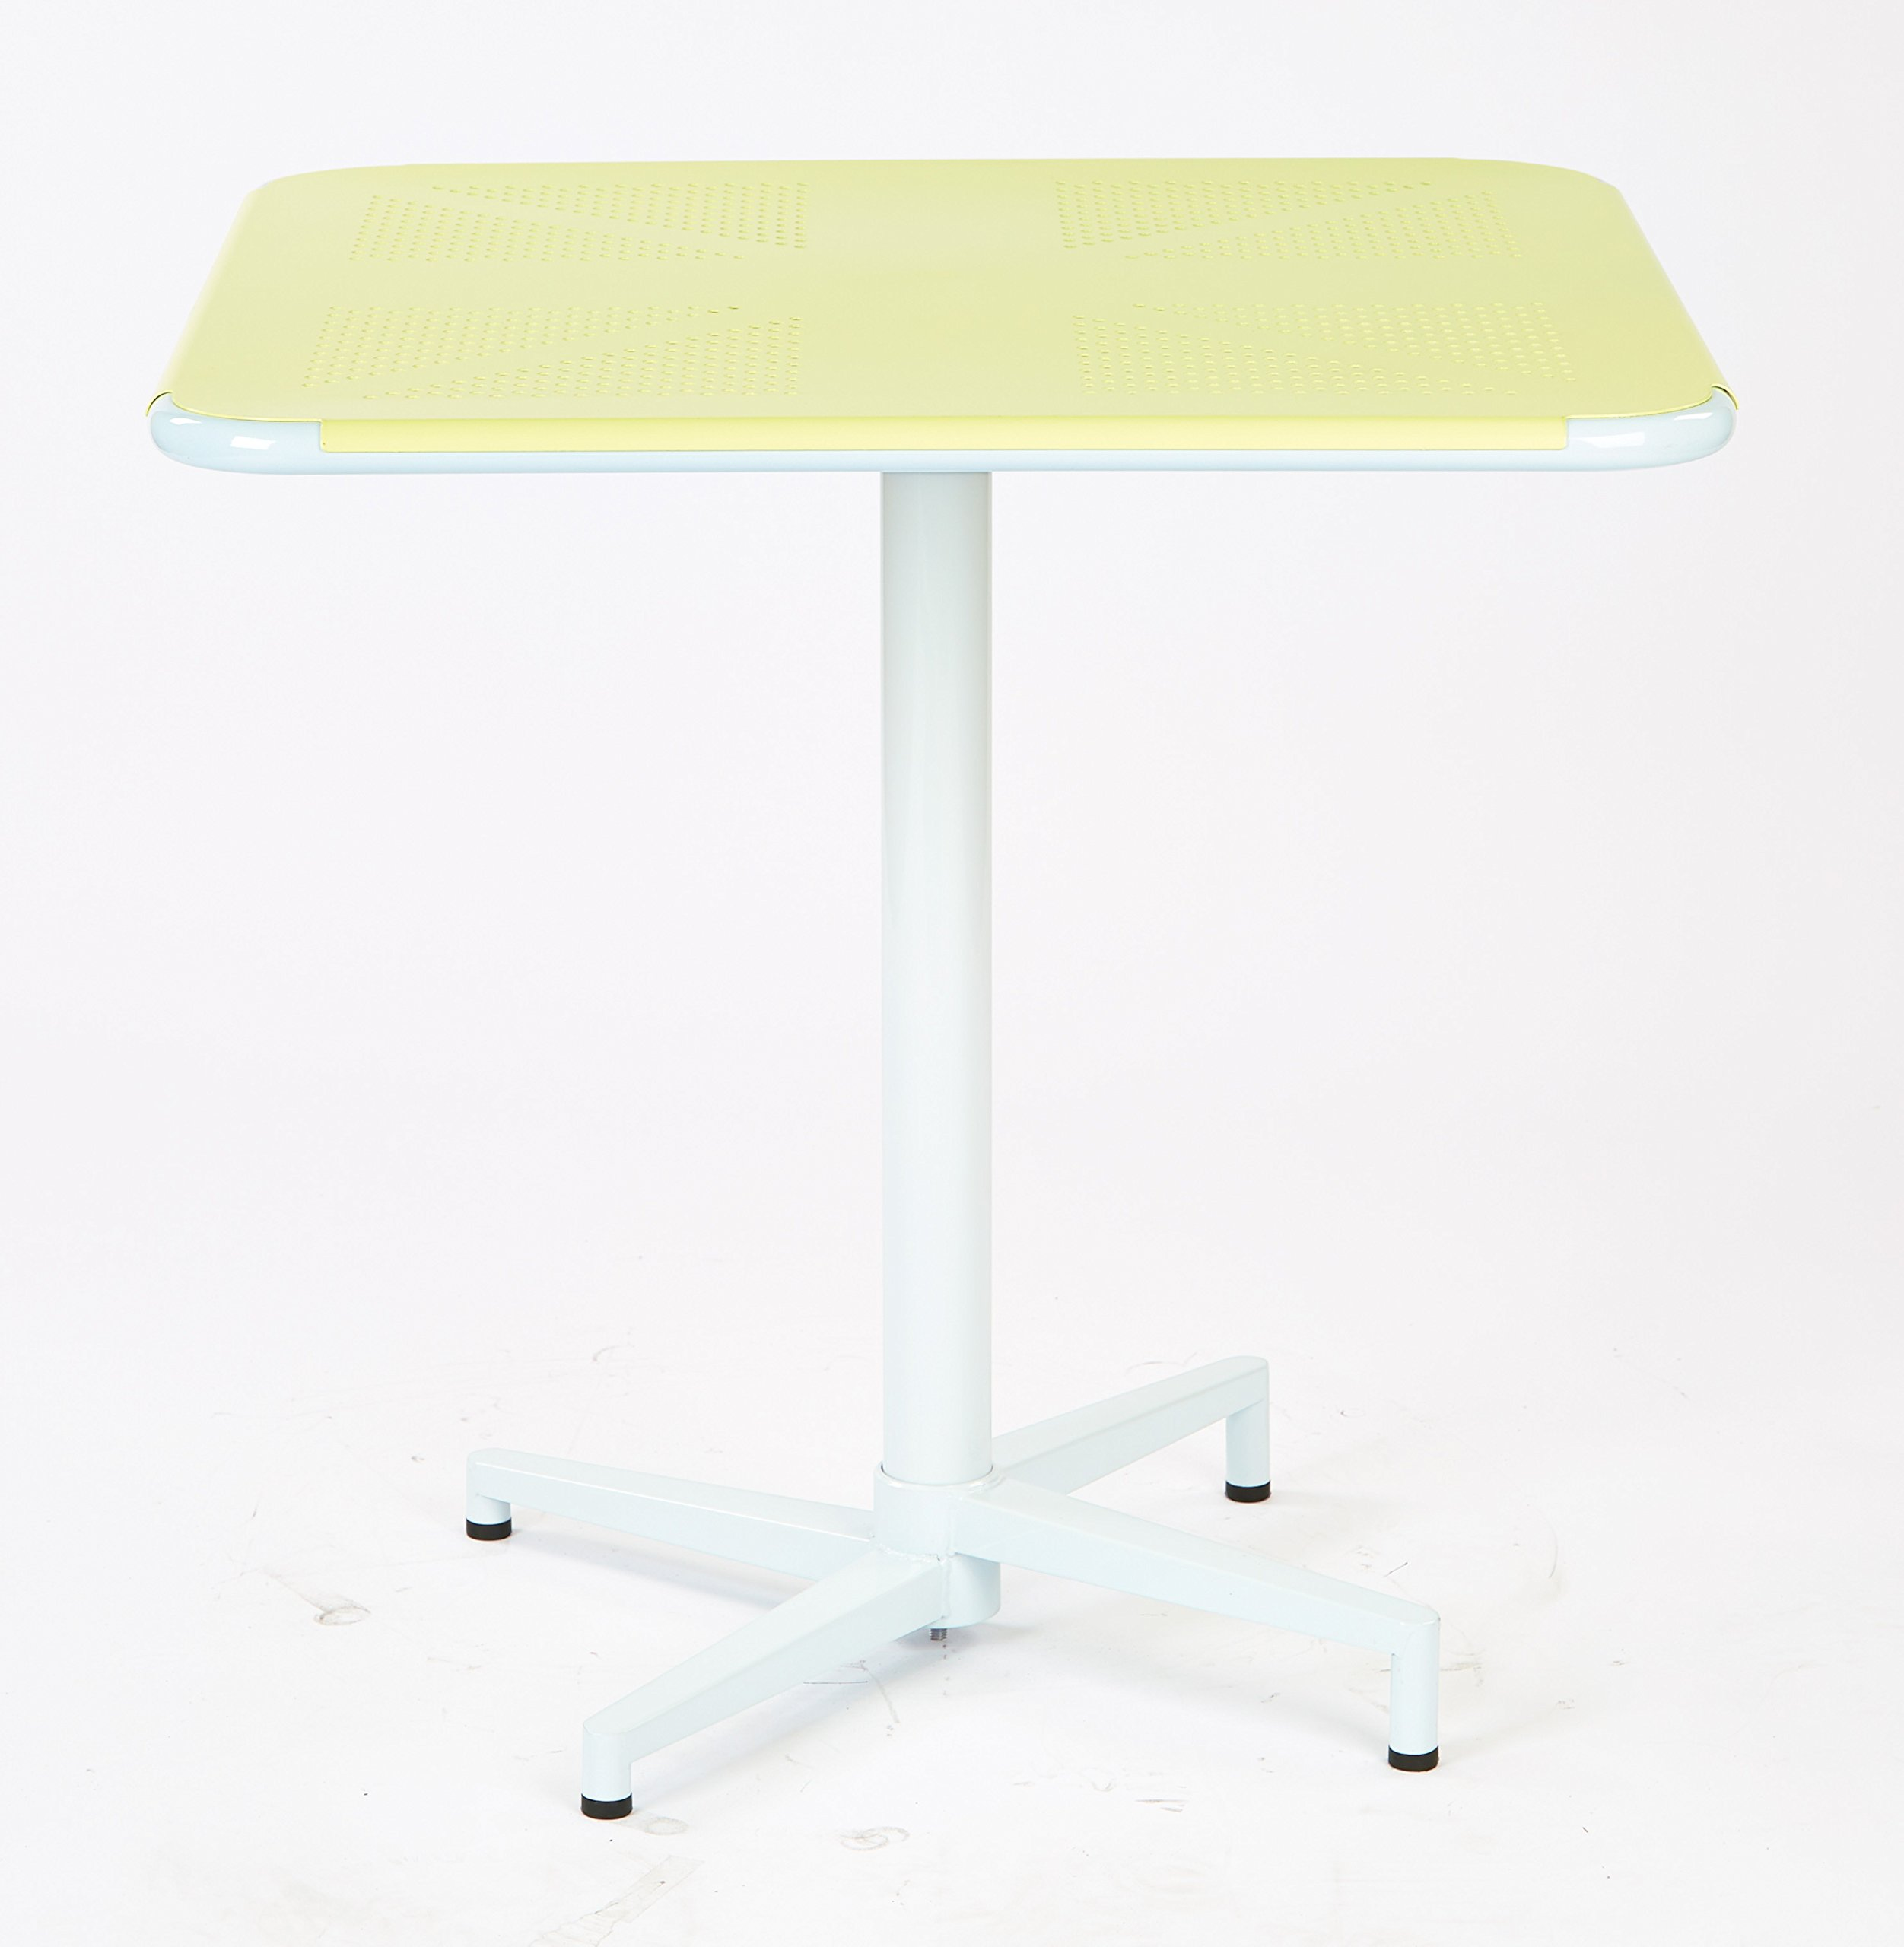 Work Smart/OSP Designs Albany 30'' Square Folding Table, Pastel Lemon by Work Smart/OSP Designs (Image #1)